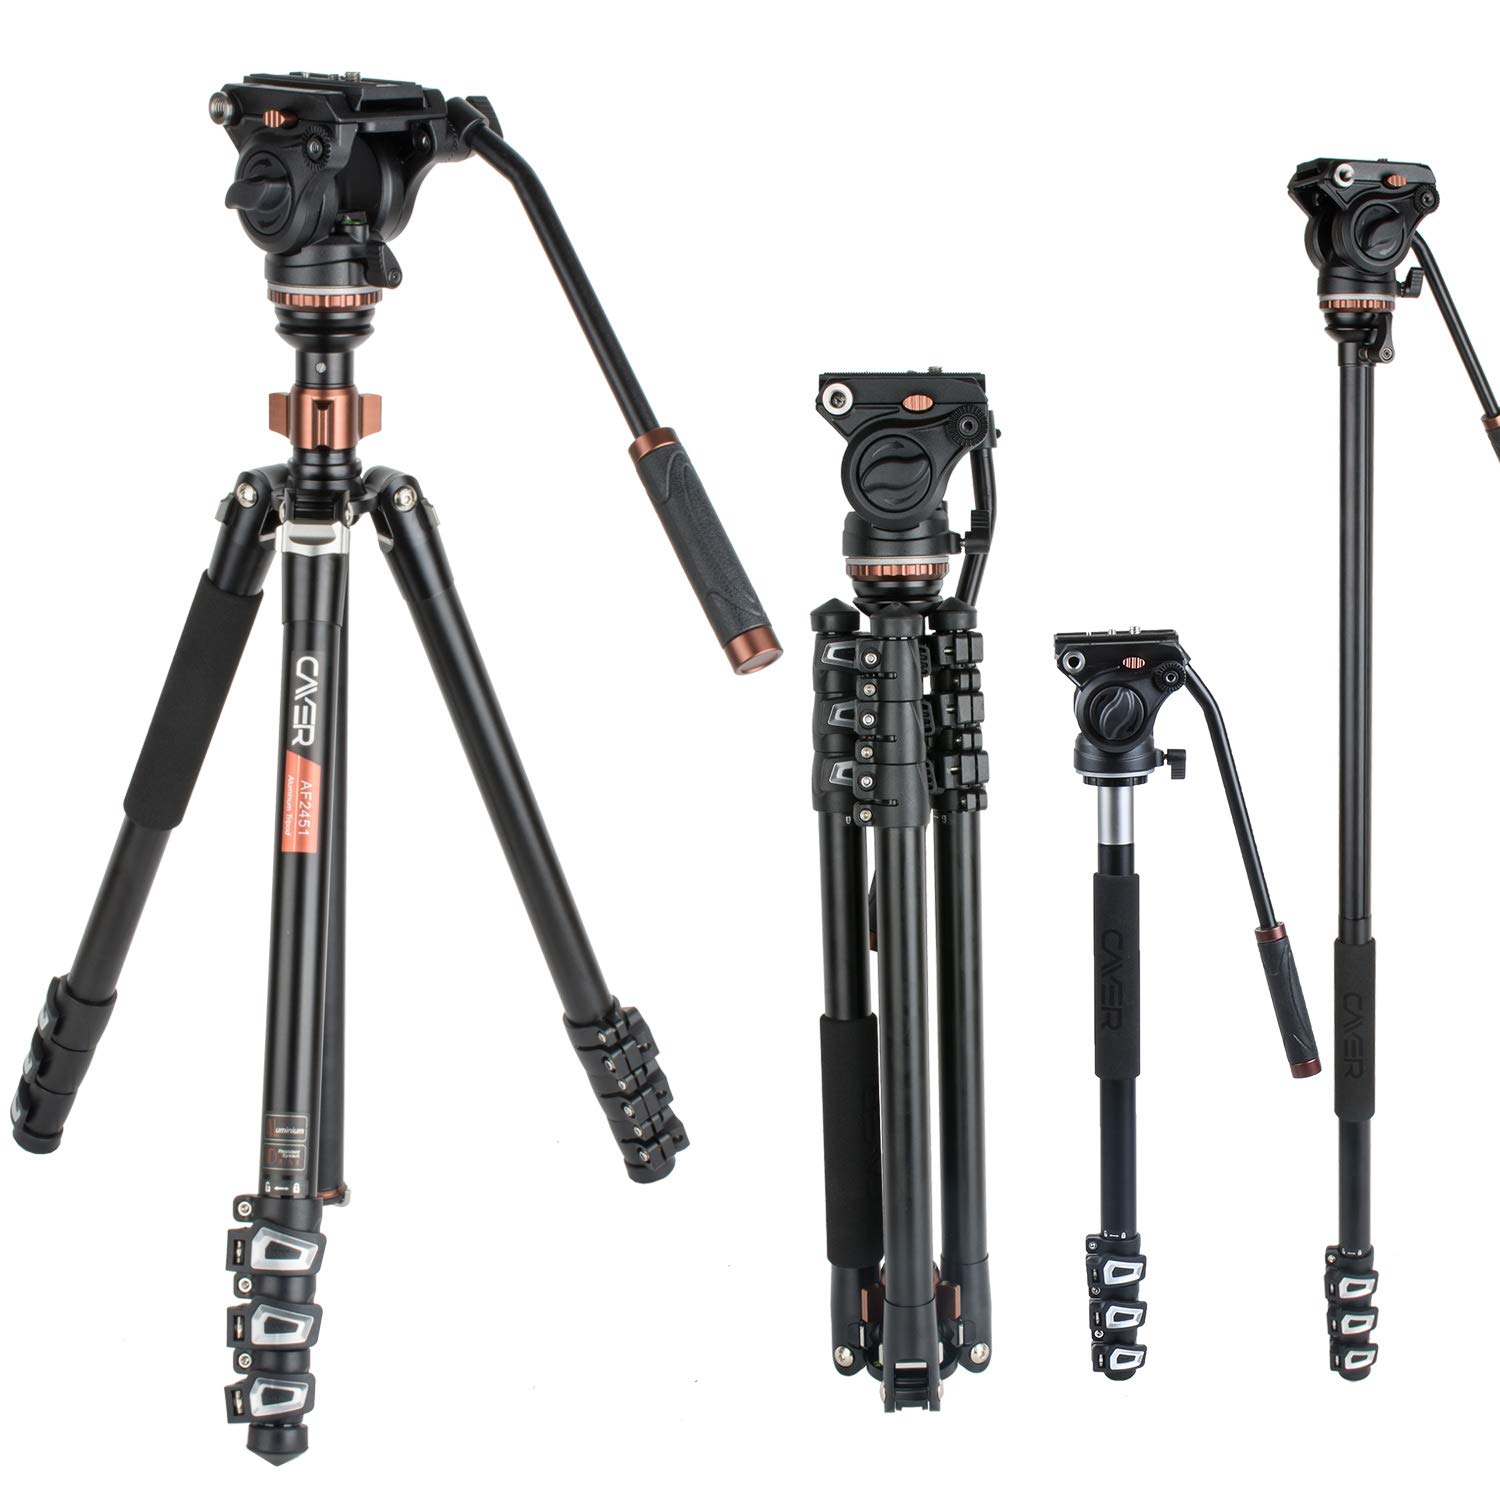 Cayer AF2451 Professional Video Camera Tripod 67 inches with Fluid Drag Head, 4-Section Compact Aluminimum DSLR Tripod Convertible to Monopod for DSLR Camera, Video Camcorder, Plus 1 Extra QR Plate